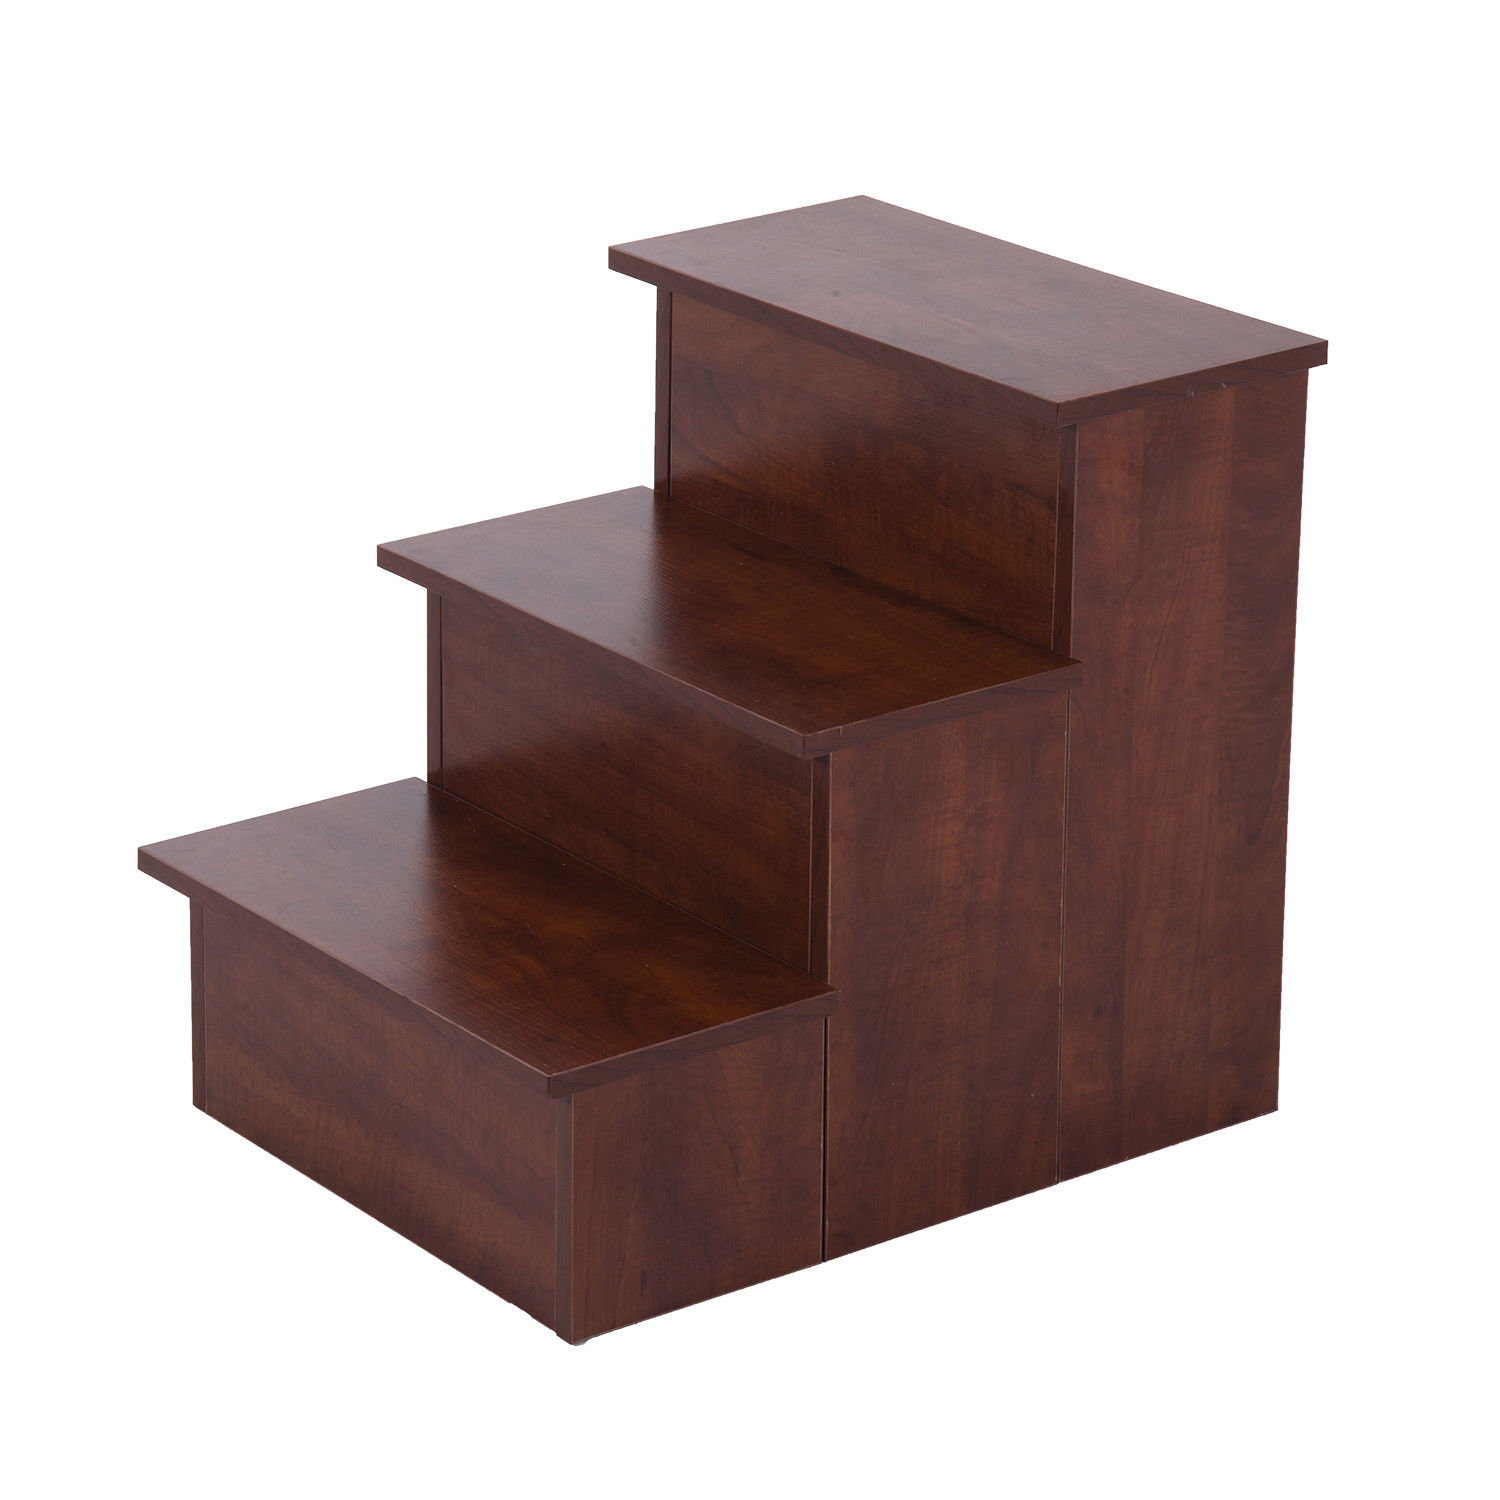 Wooden-Pet-Easy-Step-Pet-Stairs-Ramp-for-Cats-and-Dogs-w-Storage-Unit-2-Choice